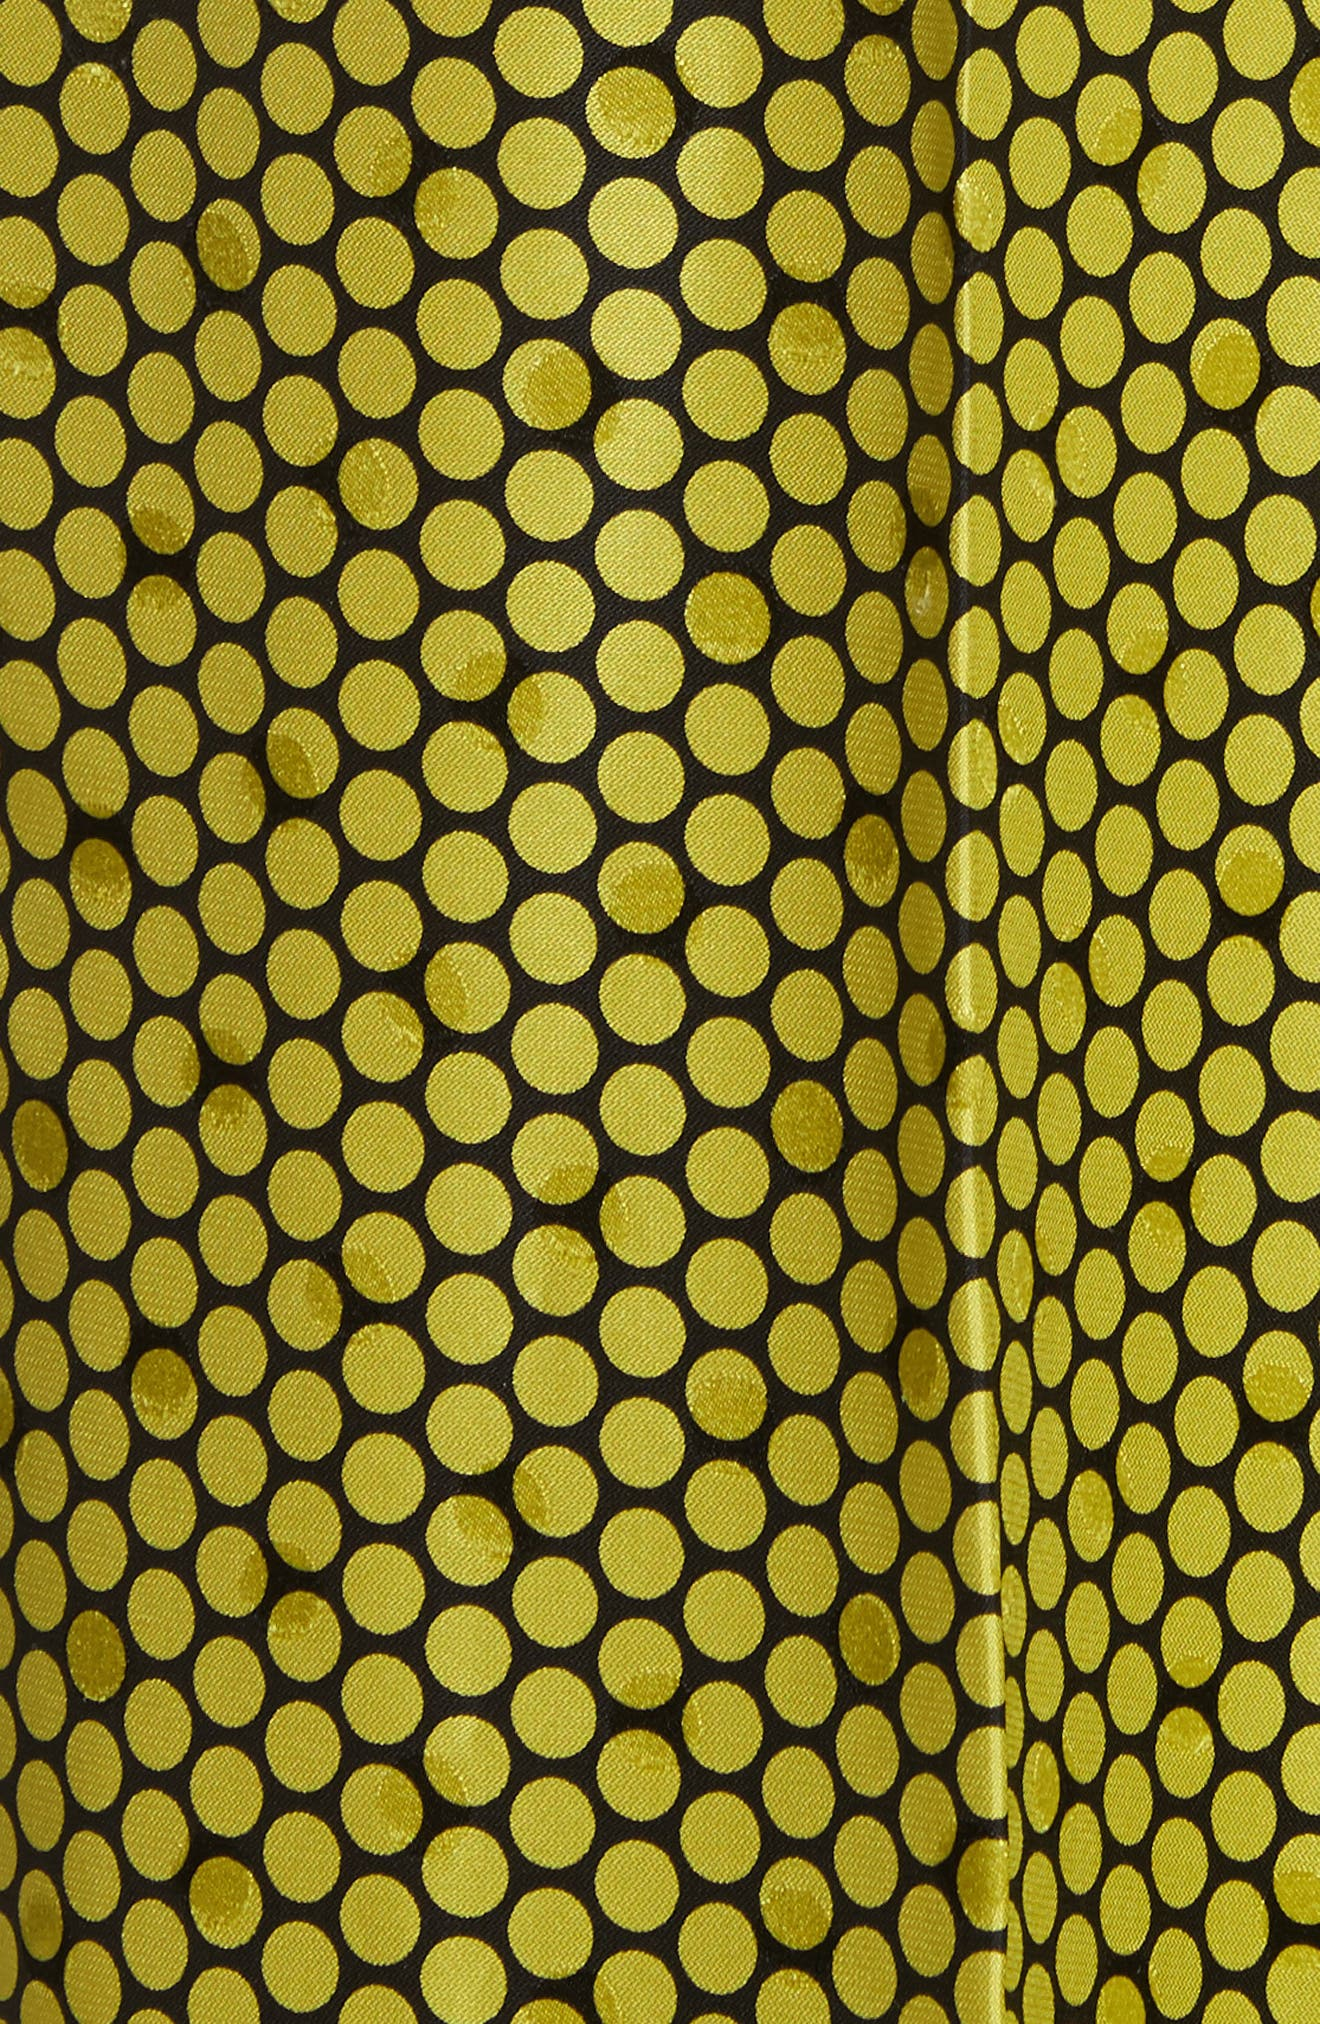 Diane von Furstenberg Dot Silk Palazzo Pants,                             Alternate thumbnail 5, color,                             Rowe Dot Citron